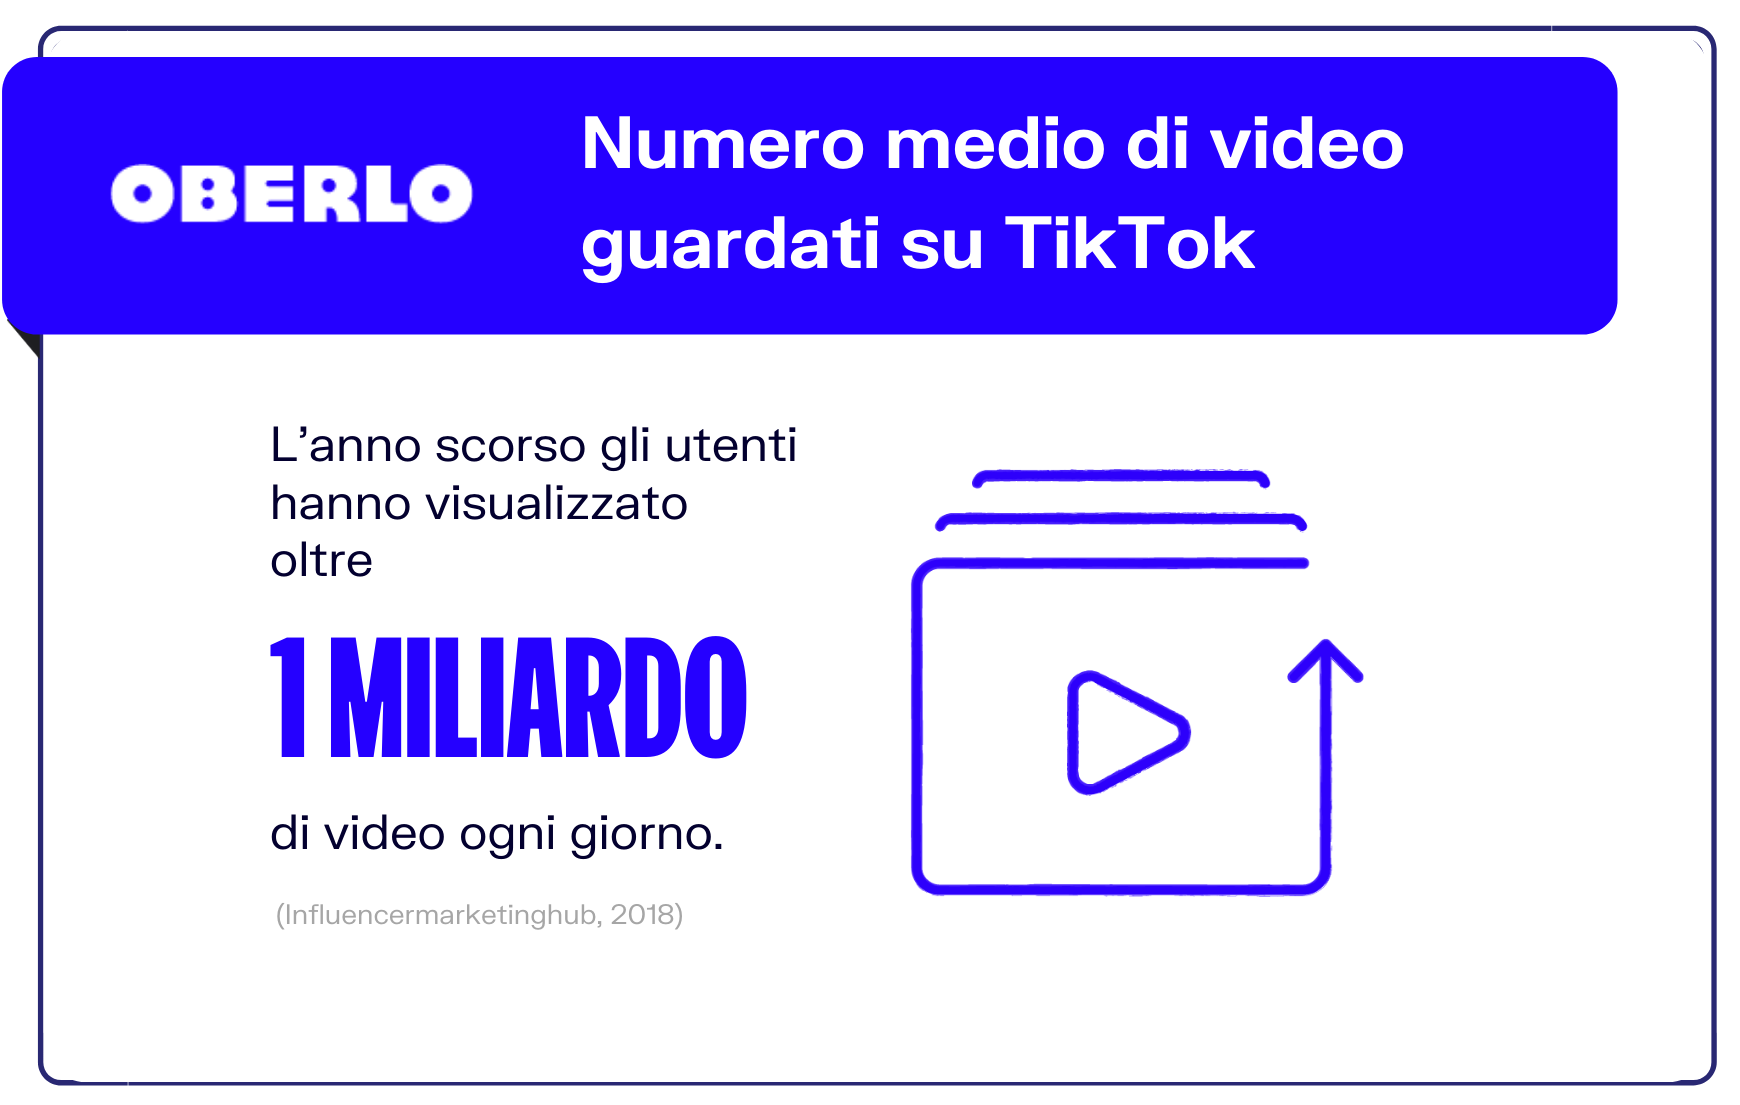 video guardati su tiktok